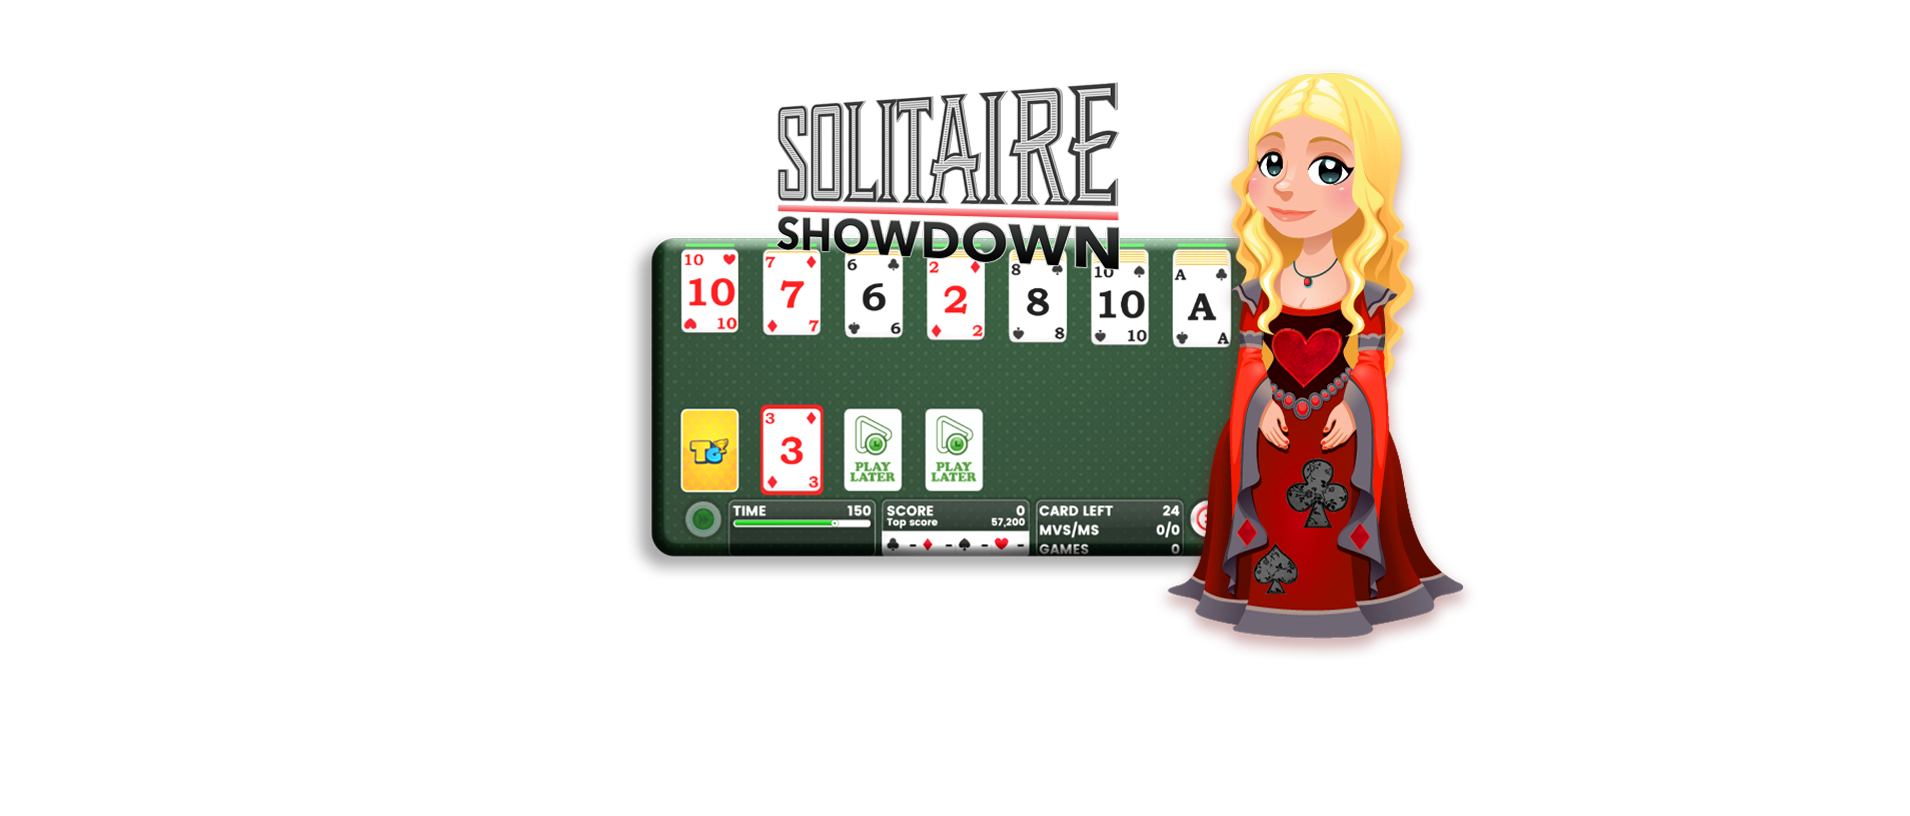 Solitaire Showdown Klondike Solitaire Online Game Tournaments